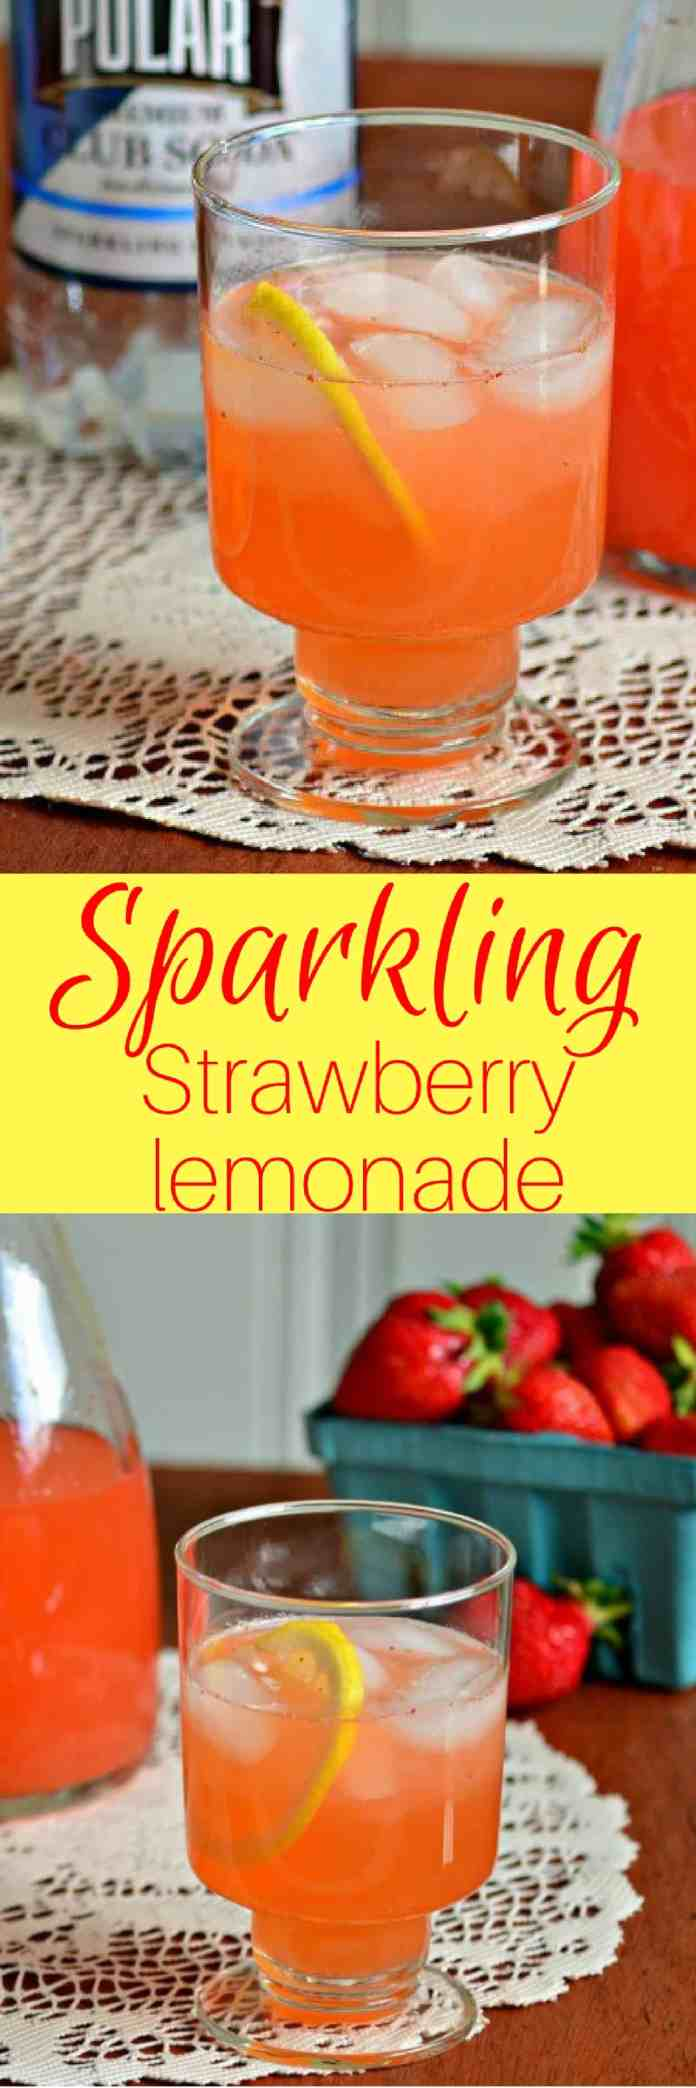 Sweet, tangy and sparkling, Strawberry Lemonade is the perfect drink to help you ease into summer.